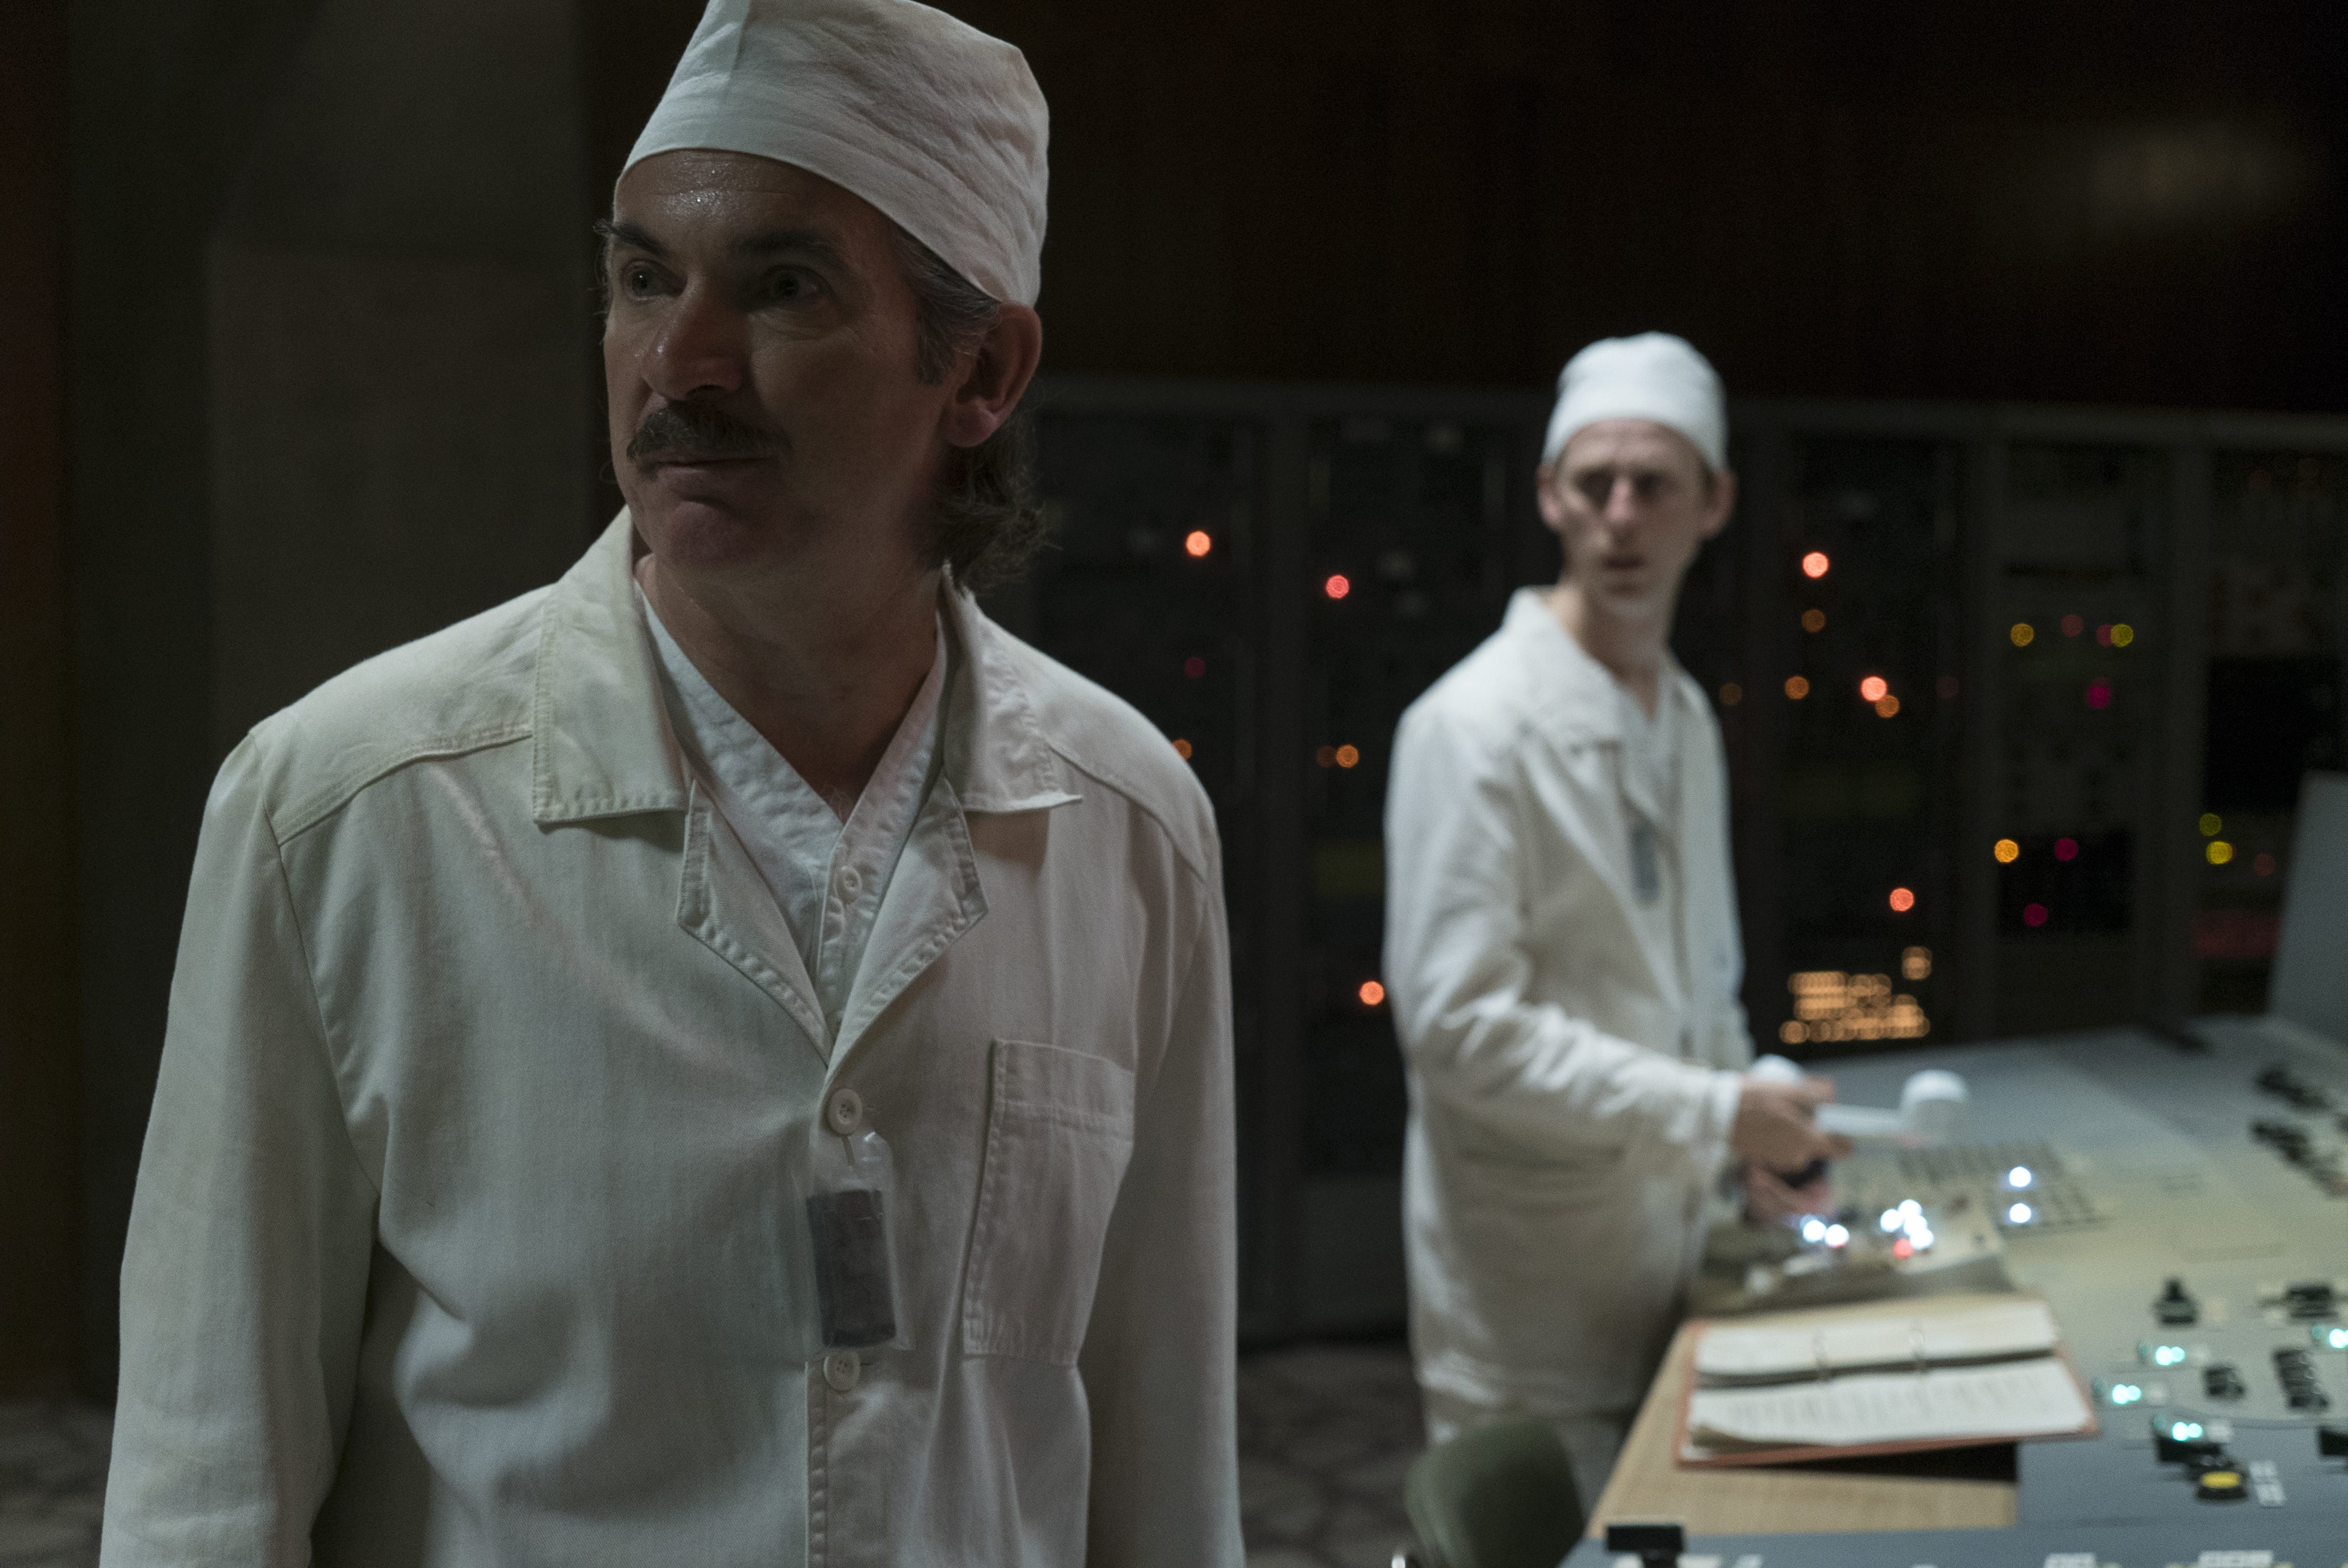 Chernobyl HBO Show Cast Characters Based On Real People